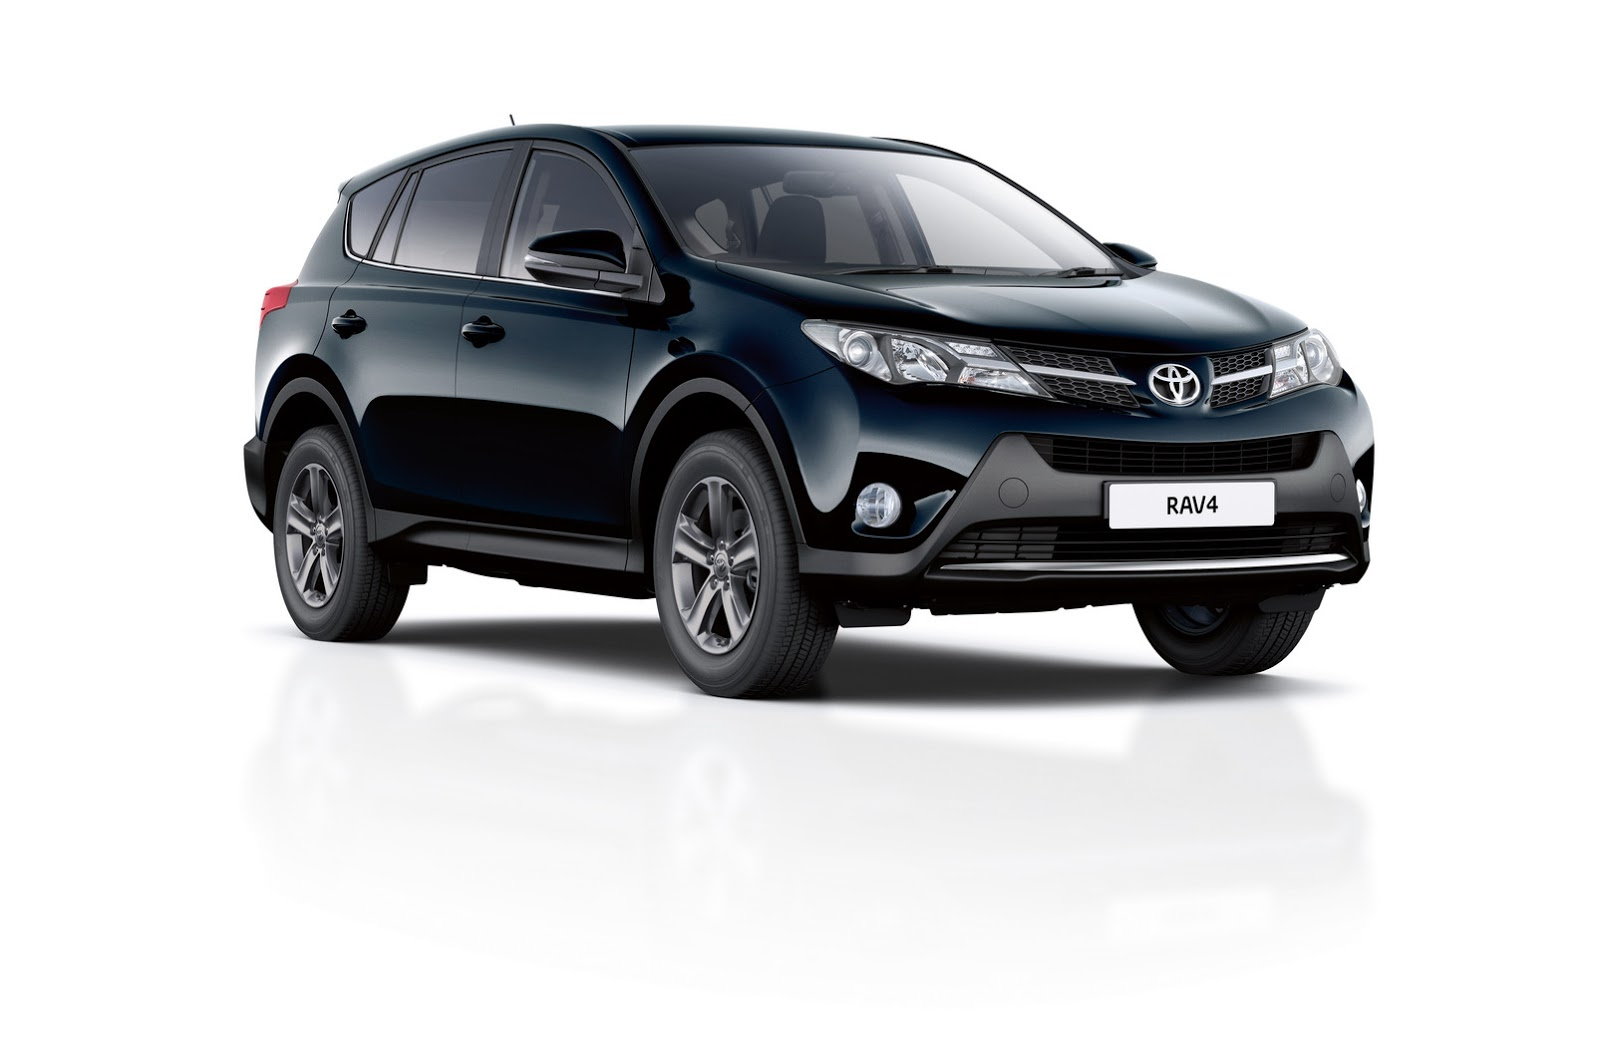 2015 toyota rav4 gets new business edition and equipment upgrades in the uk carscoops. Black Bedroom Furniture Sets. Home Design Ideas